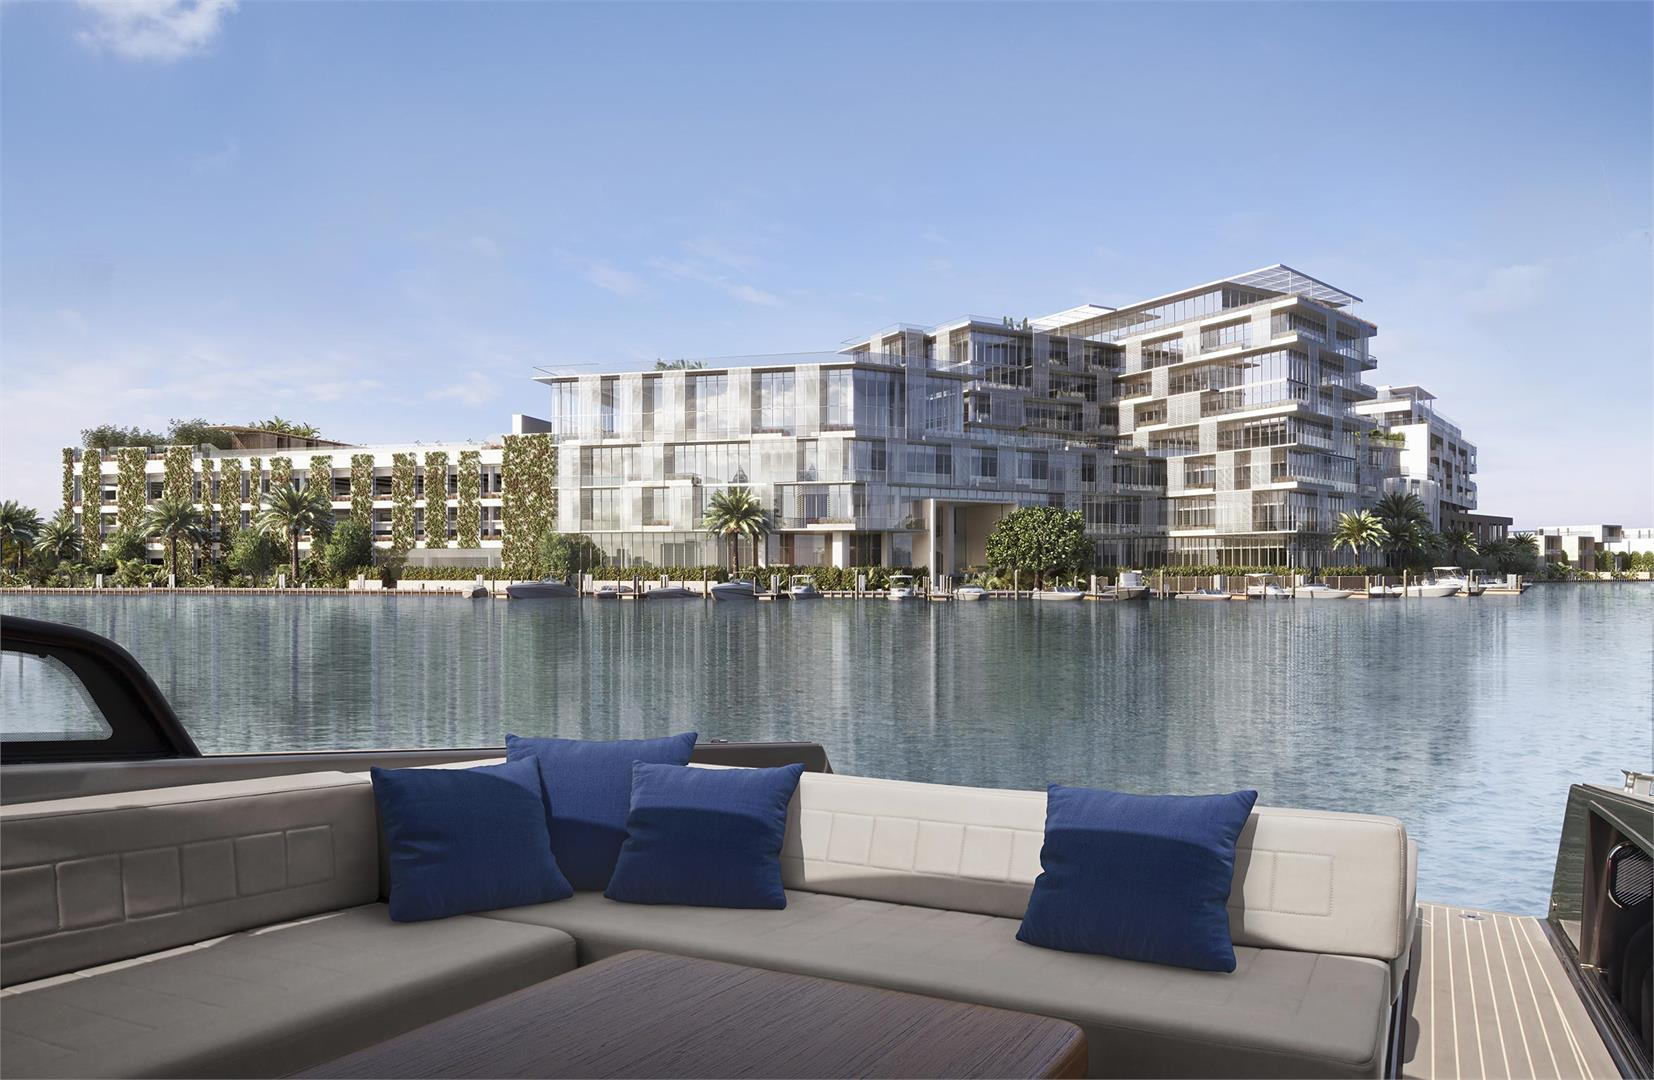 The Ritz-Carlton Residences - Image 4